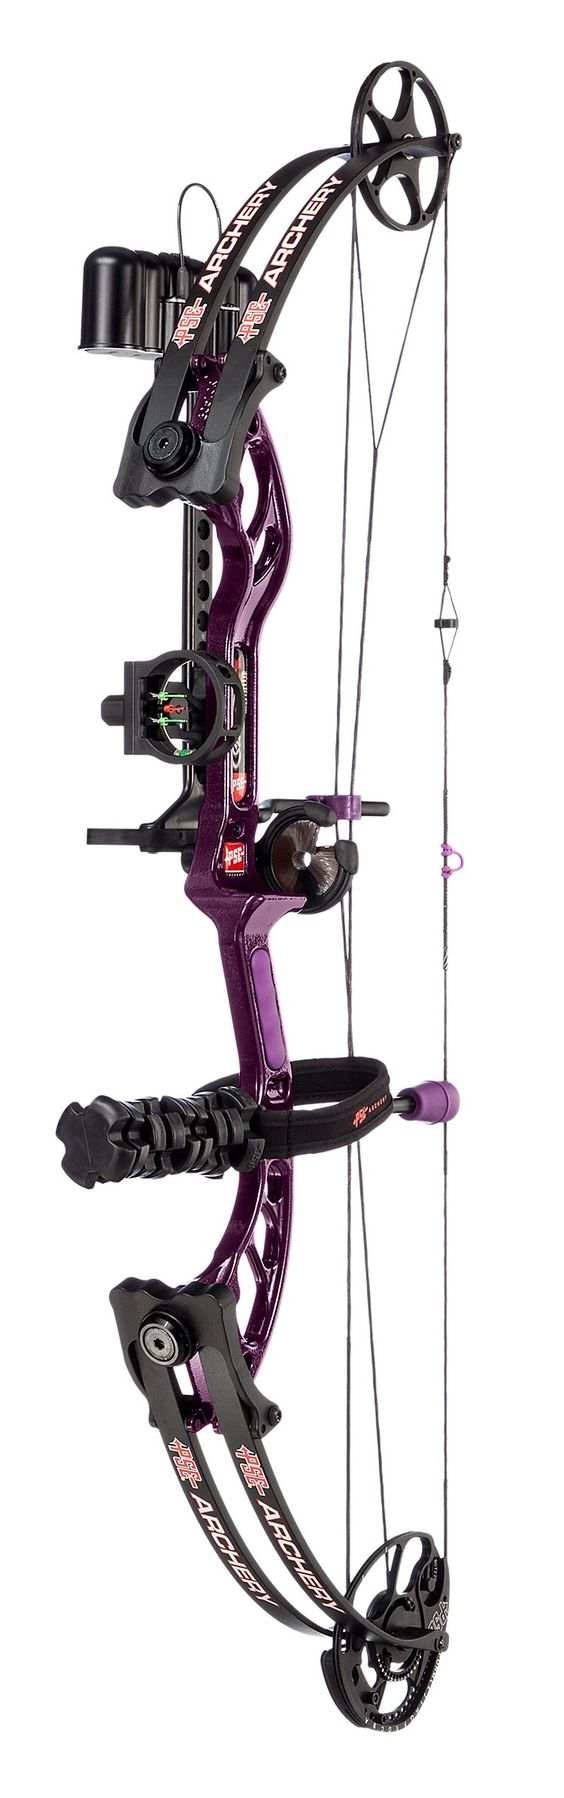 MINE: PSE Archery Stinger X Stiletto RTS Compound Bow Package for Ladies | Bass Pro Shops: The Best Hunting, Fishing, Camping & Outdoor Gear